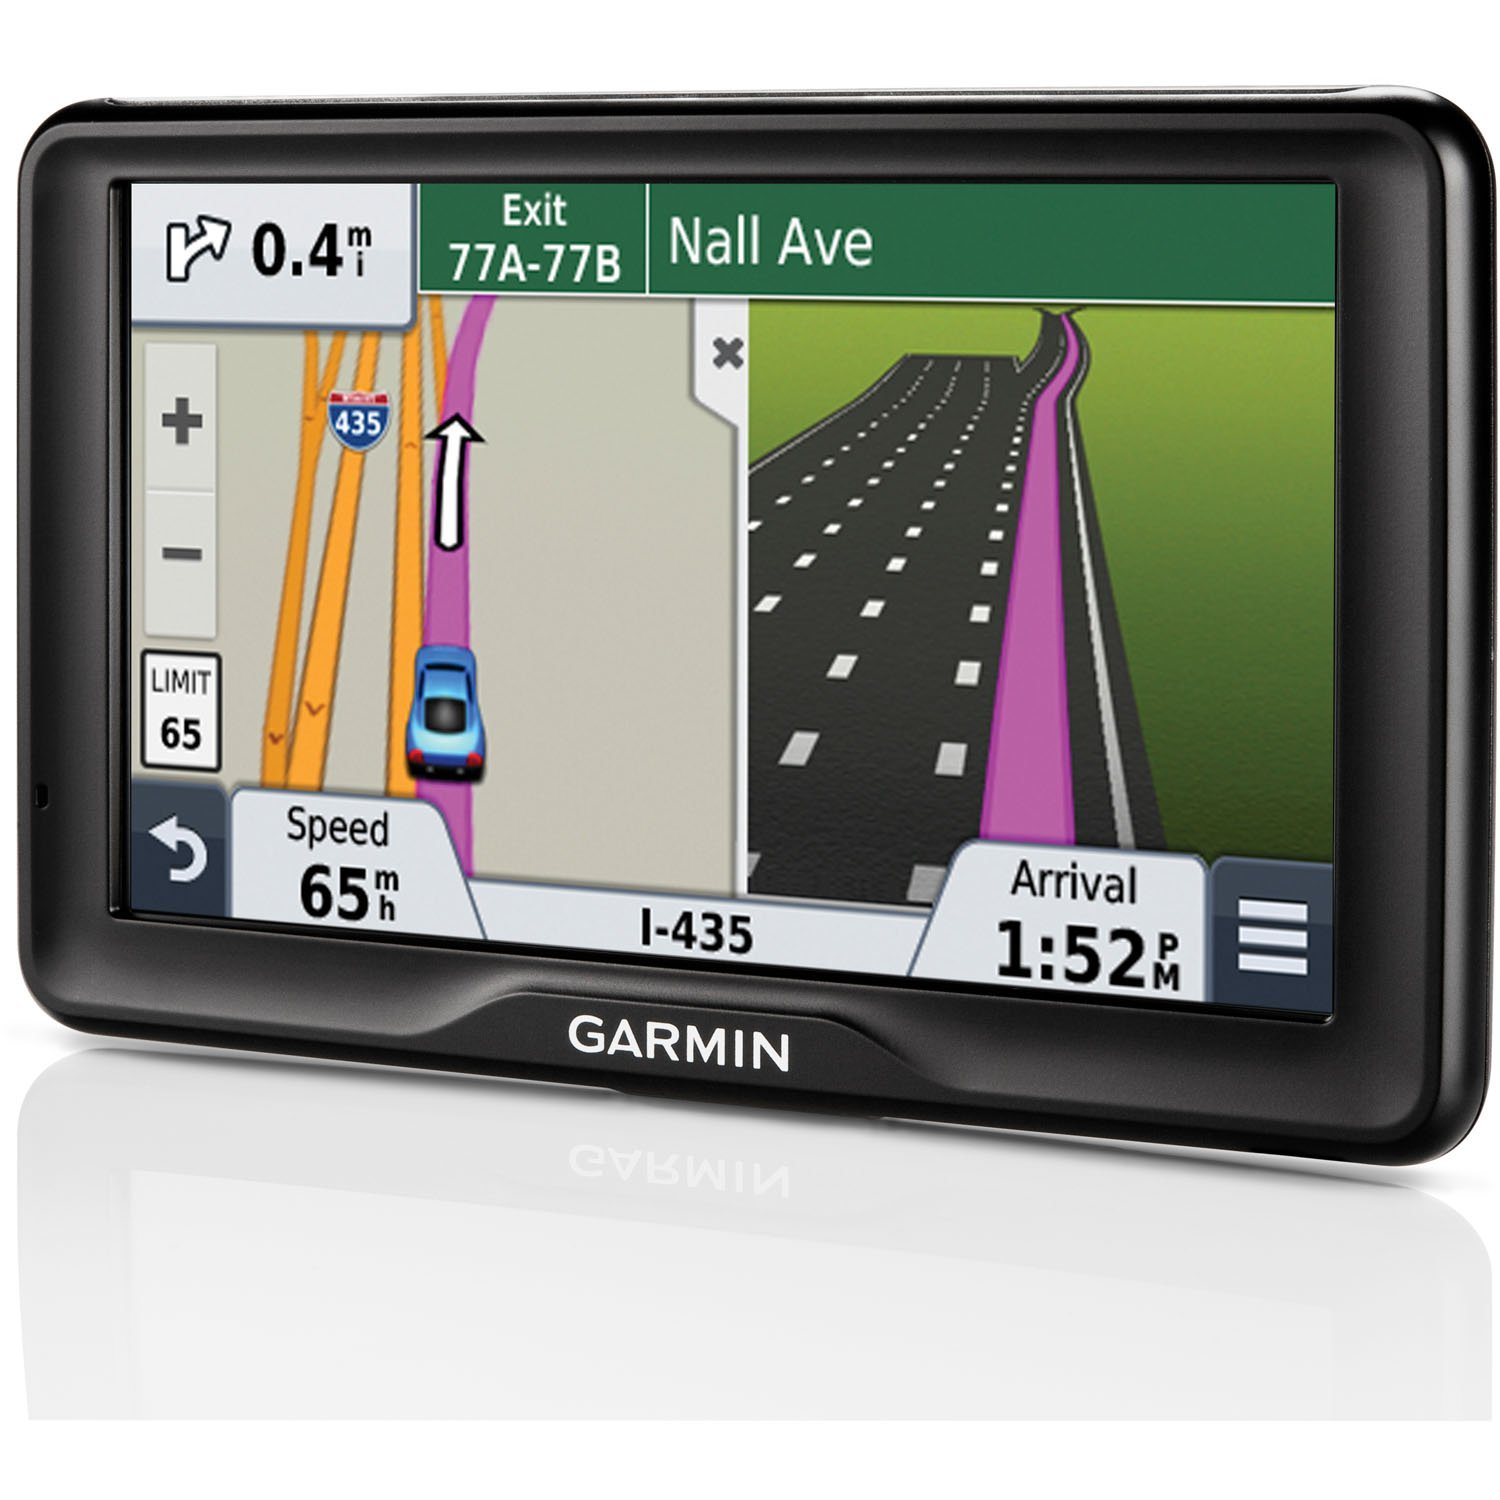 21.3 Garmin nüvi 2757LM active lane guidance